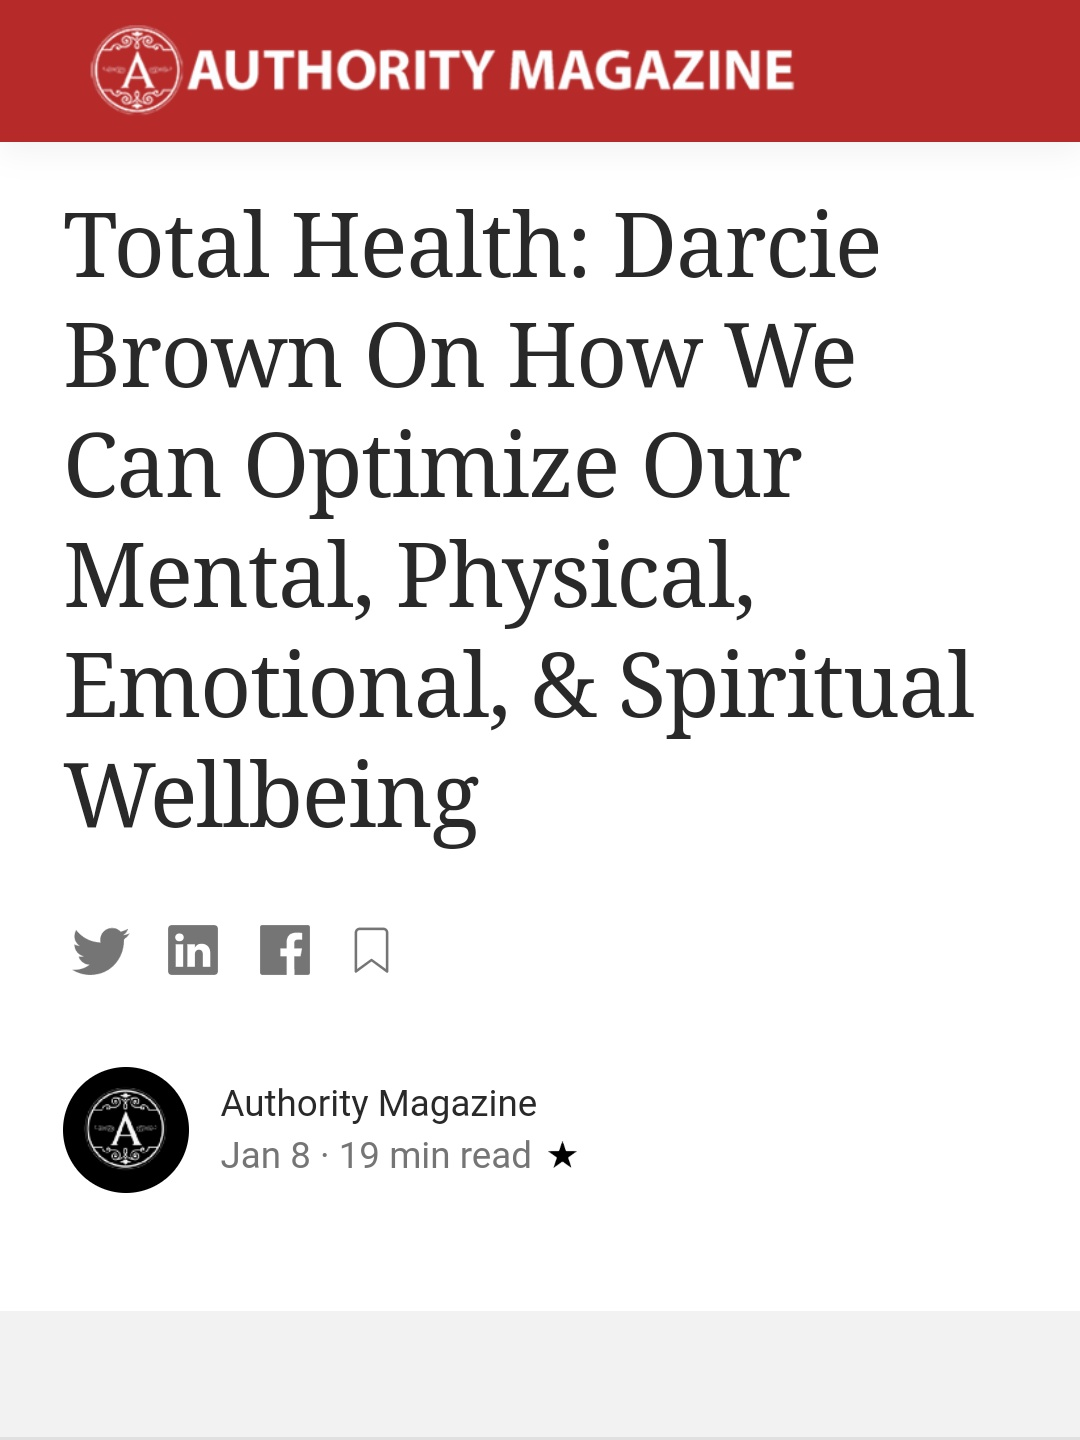 Total Health: Darcie Brown On How We Can Optimize Our Mental, Physical, Emotional, & Spiritual Wellbeing - on Authority Magazine